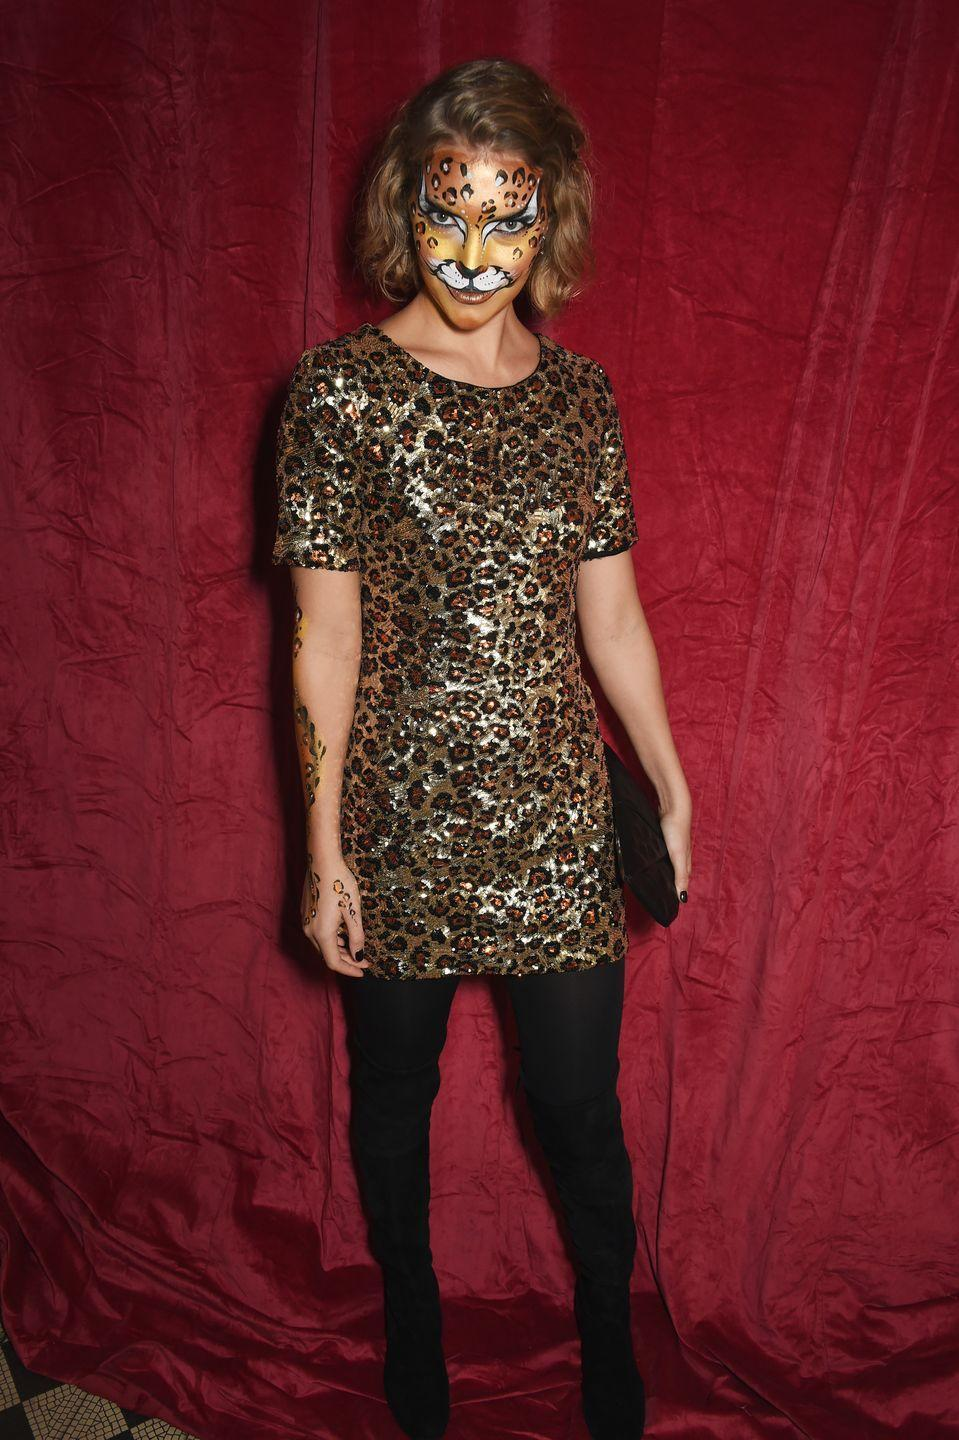 """<p>To get in touch with your wild side, throw on an animal print dress or shirt and then turn your face into a work of art with a face paint kit. </p><p><strong>What You'll Need:</strong> <a href=""""https://www.amazon.com/POPYOUNG-Dresses-X-Large-Spotted-Pattern/dp/B07ZS9FGMW?tag=syn-yahoo-20&ascsubtag=%5Bartid%7C10070.g.28166042%5Bsrc%7Cyahoo-us"""" rel=""""nofollow noopener"""" target=""""_blank"""" data-ylk=""""slk:leopard-print dress"""" class=""""link rapid-noclick-resp"""">leopard-print dress</a> and <a href=""""https://www.amazon.com/Hanes-Reflections-Womens-Curves-Blackout/dp/B07DLRWBM2?tag=syn-yahoo-20&ascsubtag=%5Bartid%7C10070.g.28166042%5Bsrc%7Cyahoo-us"""" rel=""""nofollow noopener"""" target=""""_blank"""" data-ylk=""""slk:black tights"""" class=""""link rapid-noclick-resp"""">black tights</a></p>"""